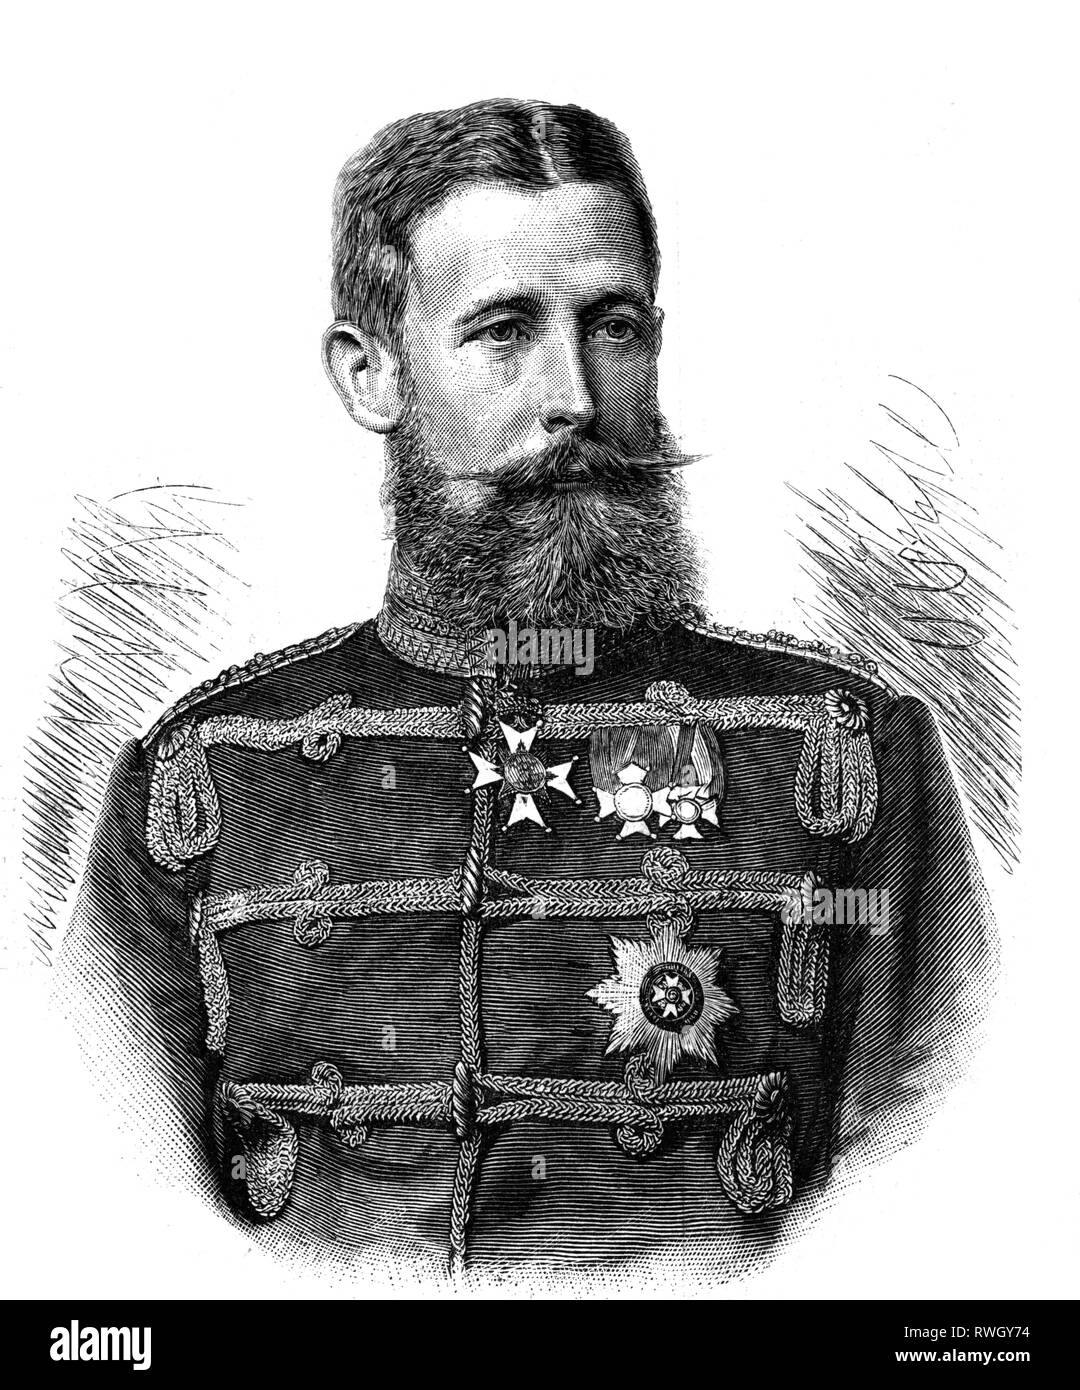 Adolf Wilhelm, 20.7.1859 - 9.7.1916, Prince of Schaumburg-Lippe, Prussian general, regent of the Principality of Lippe-Detmold 1895 - 1897, half-length, wood engraving, 1890, Additional-Rights-Clearance-Info-Not-Available - Stock Image